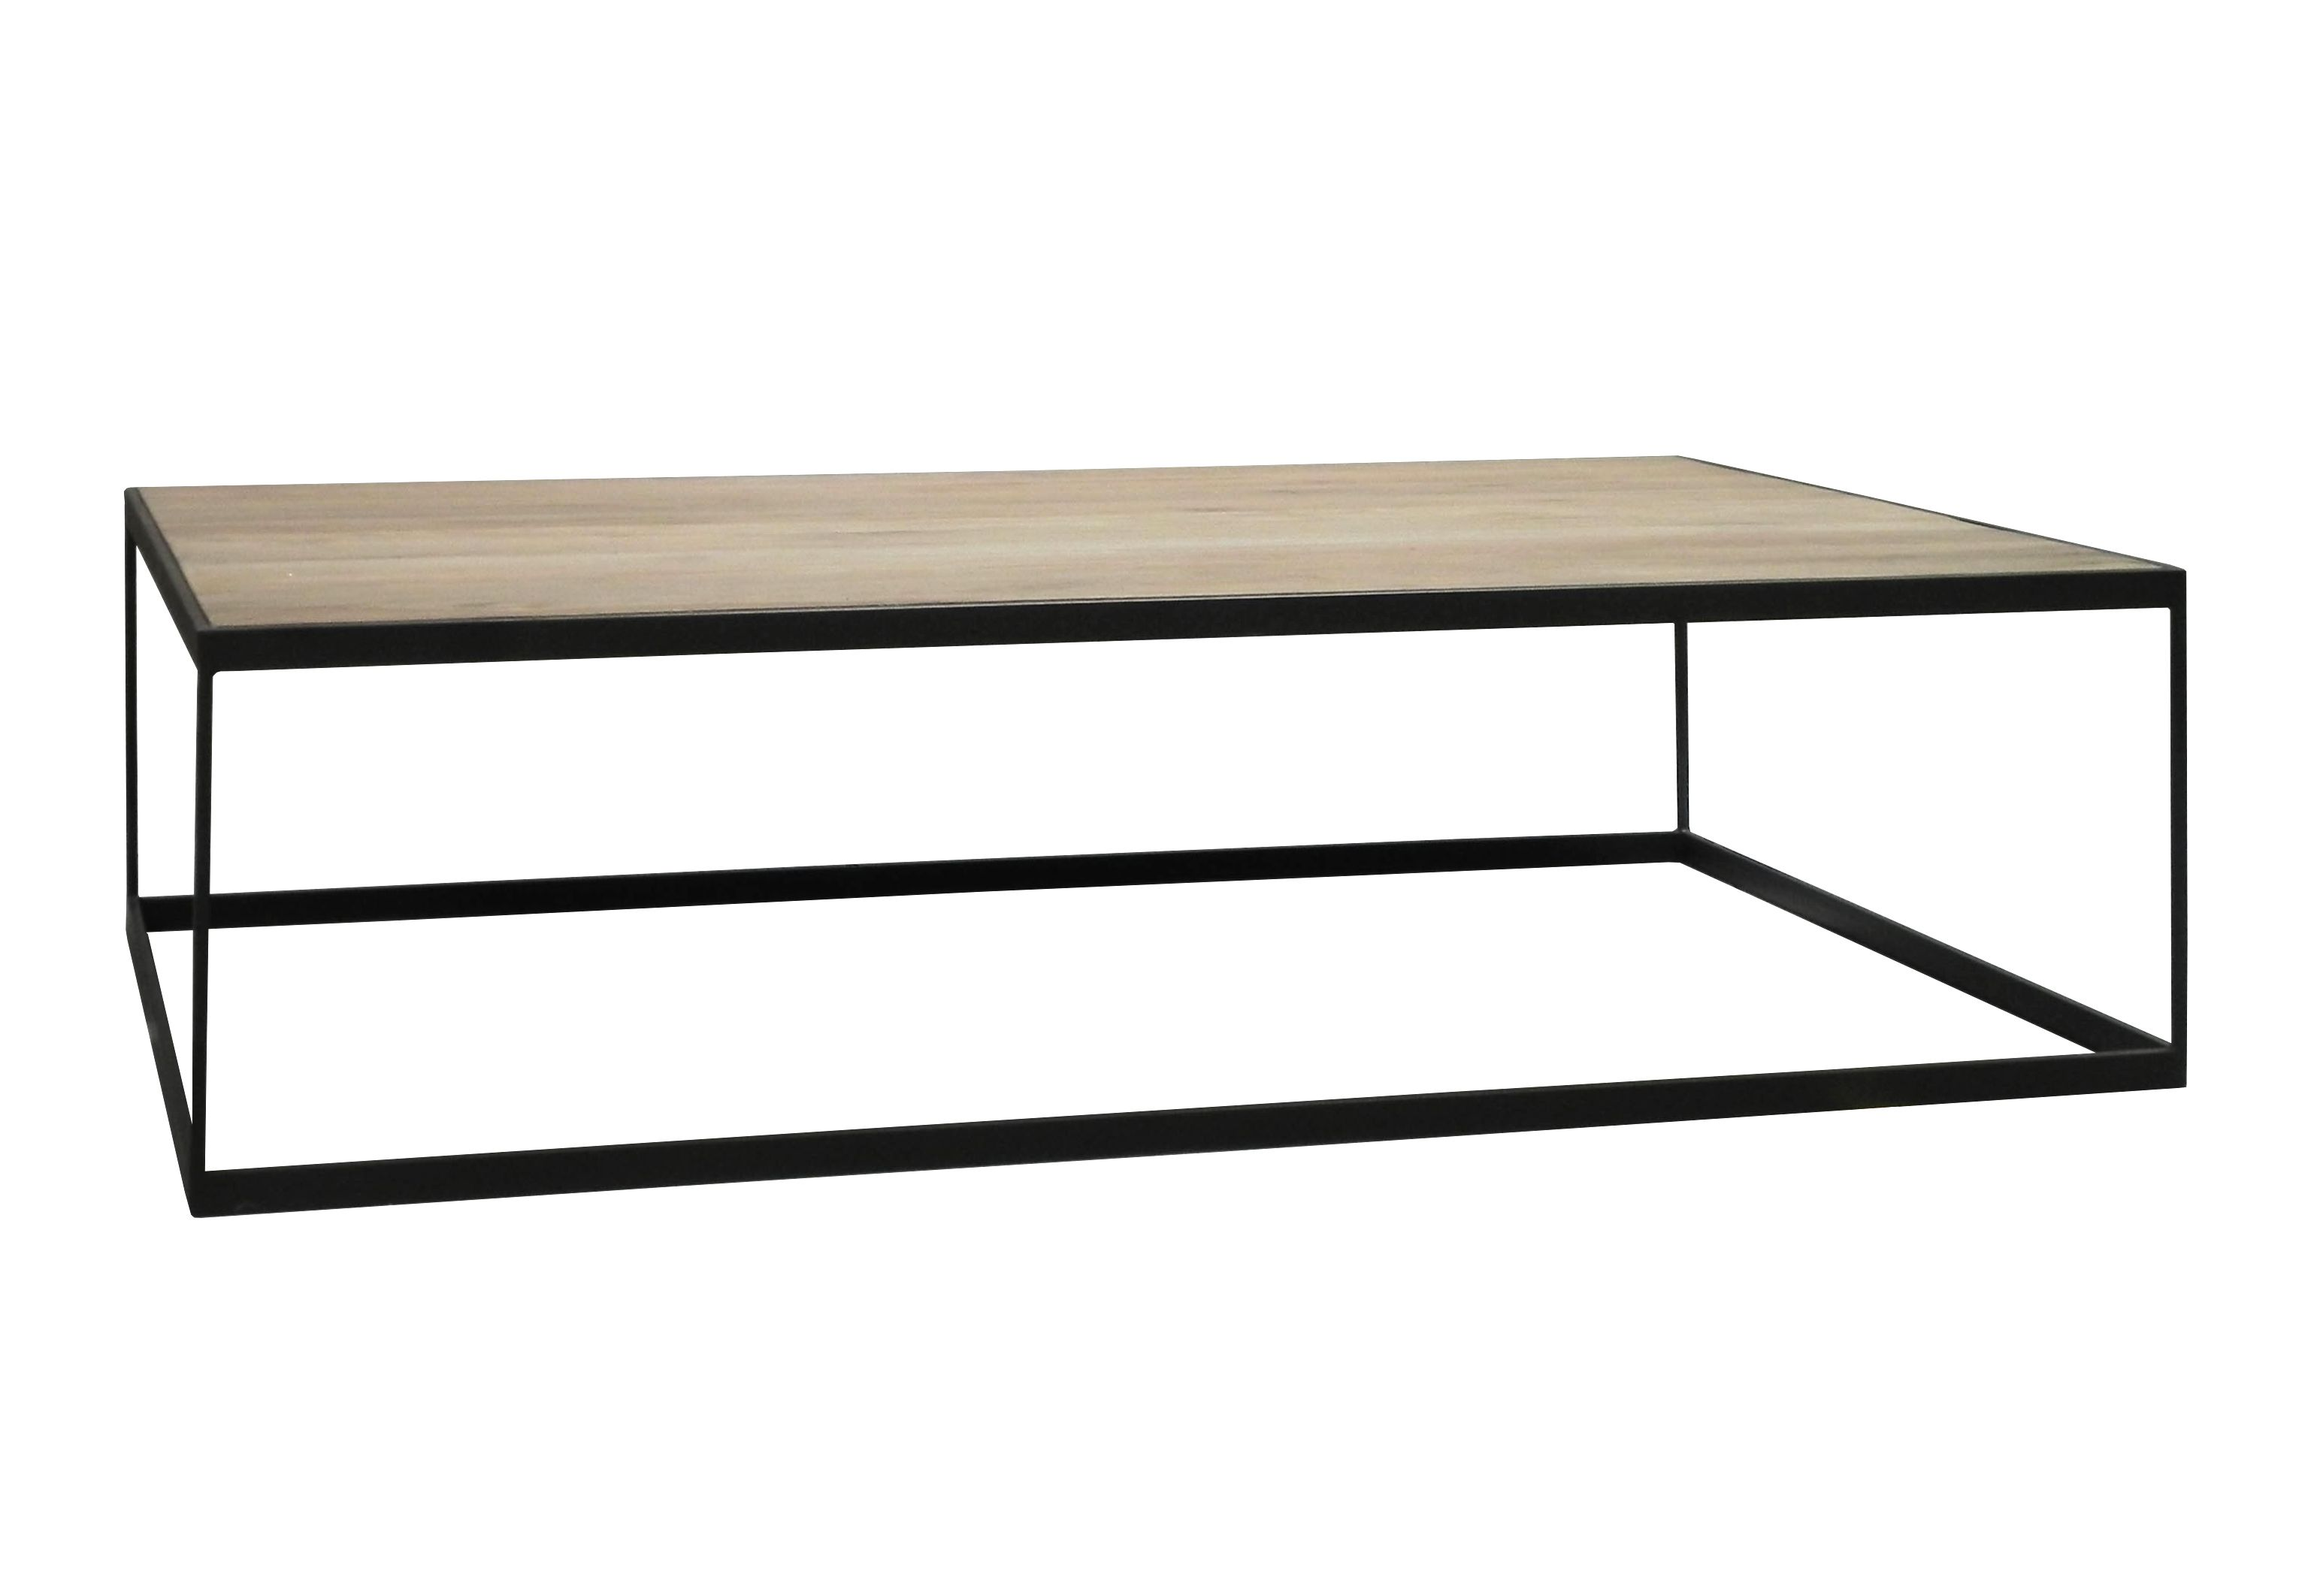 Table Basse Chene Massif Metal Soomaa Ref 30020860 Table Basse